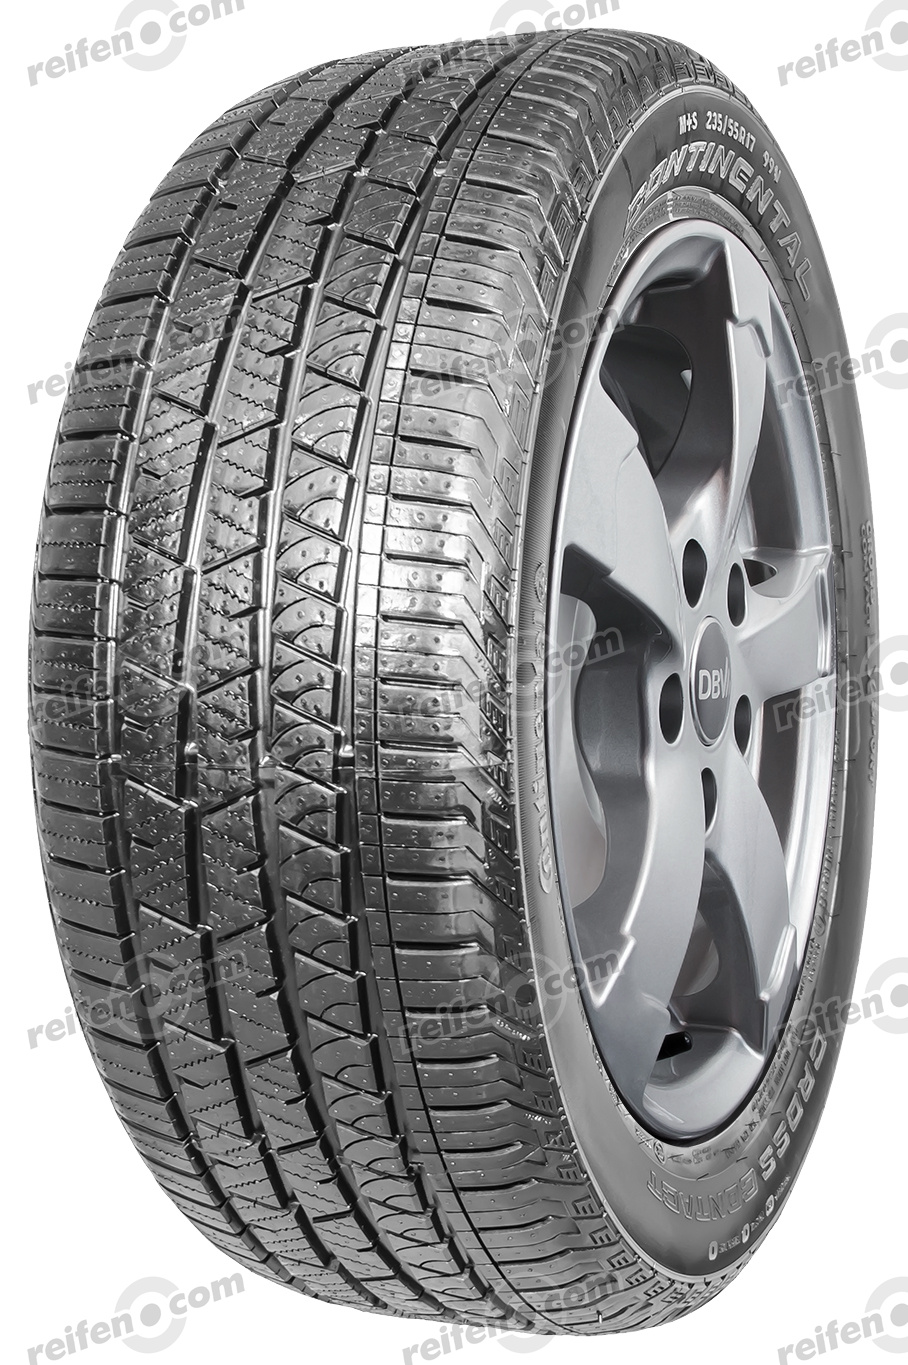 235/55 R19 101H CrossContact LX Sport SSR MOE BSW  CrossContact LX Sport SSR MOE BSW